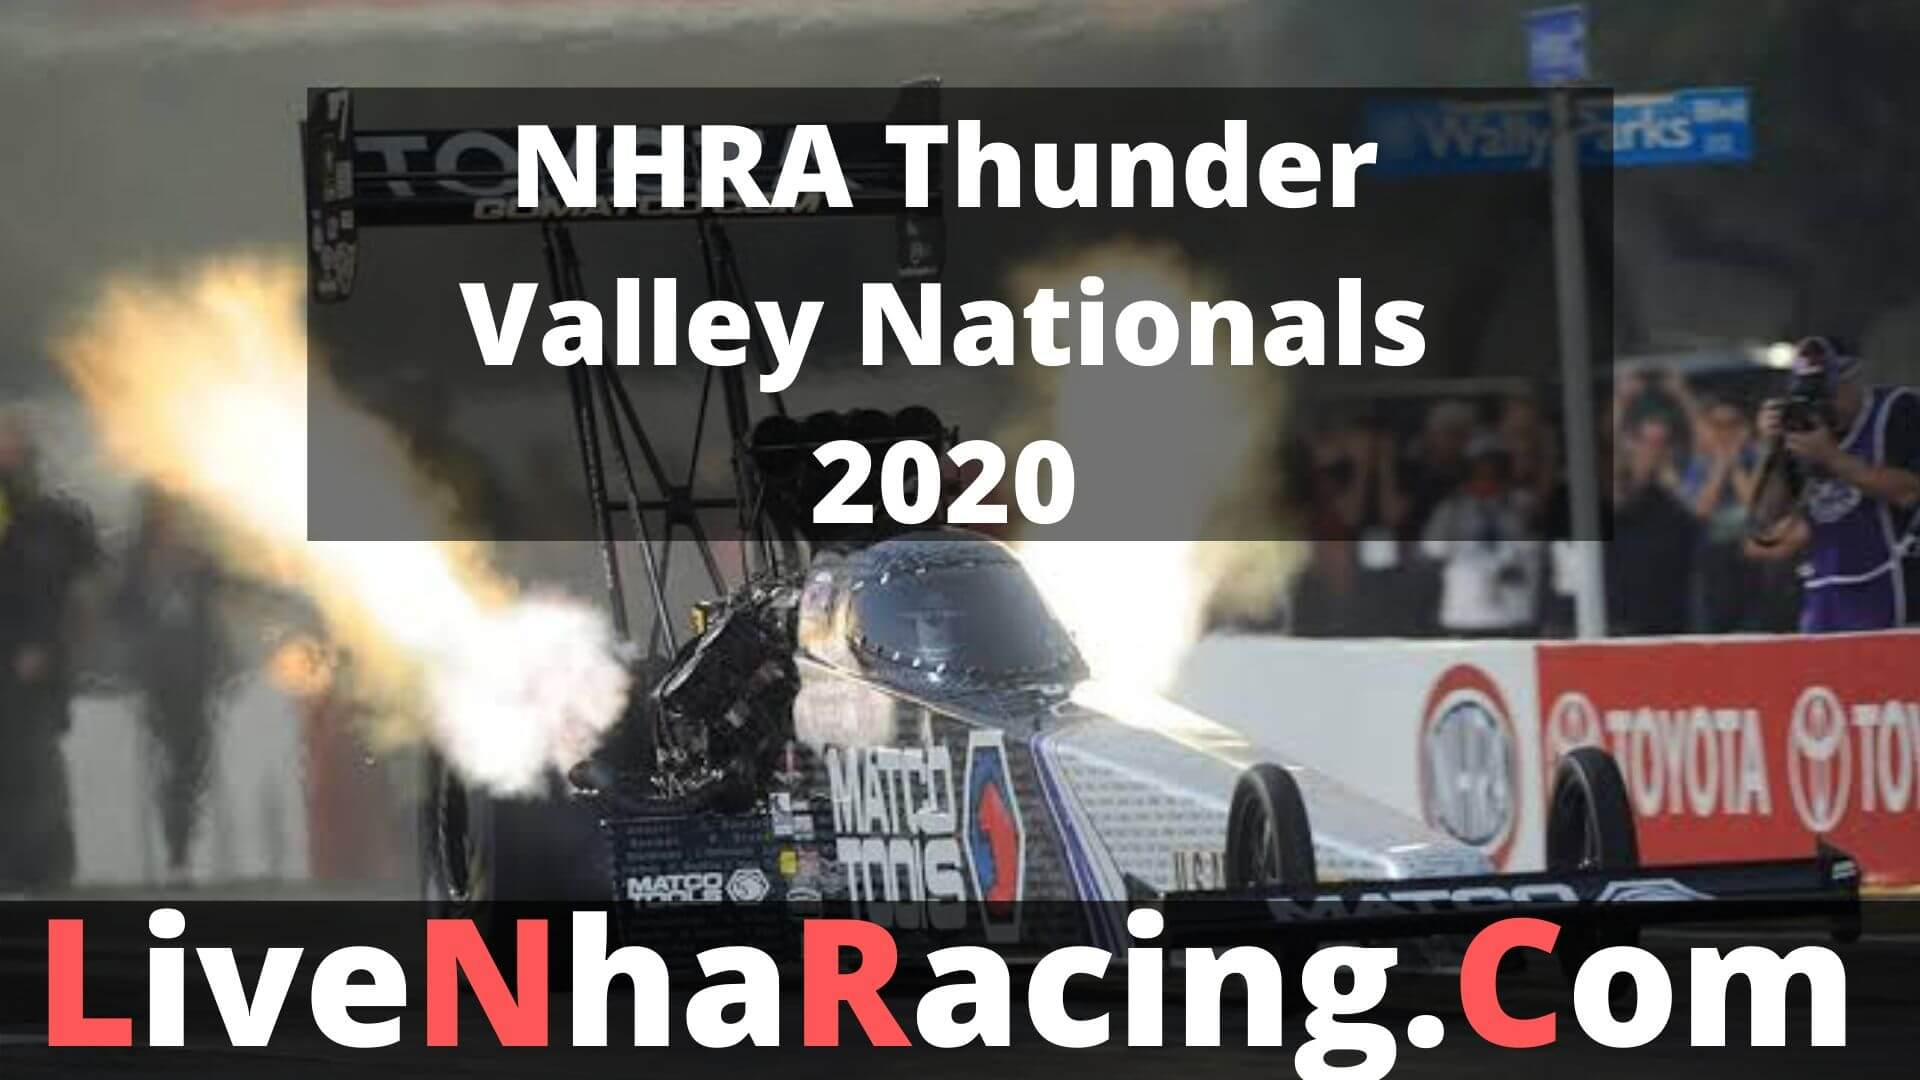 NHRA Thunder Valley Nationals - Saturday Nitro Live Stream 2020